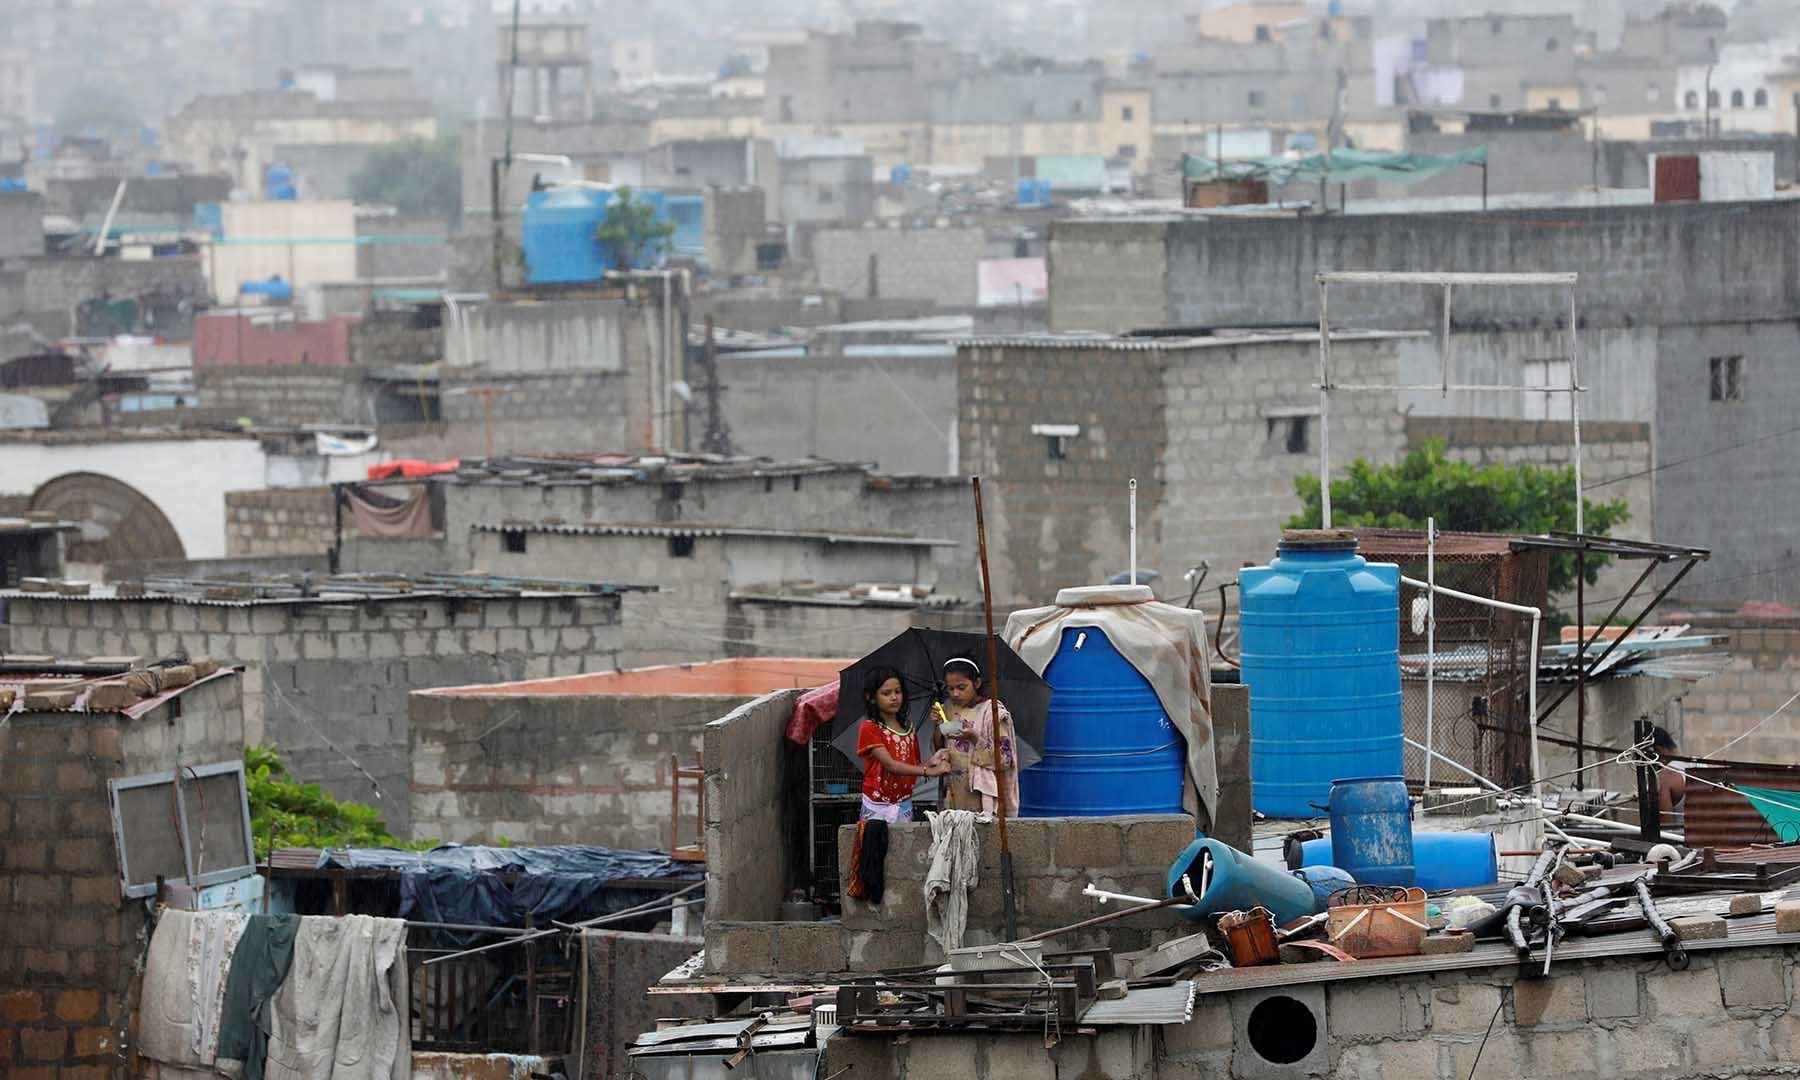 Siblings use an umbrella to avoid rain as they eat on a roof in a neighbourhood of Karachi on Monday. — Reuters